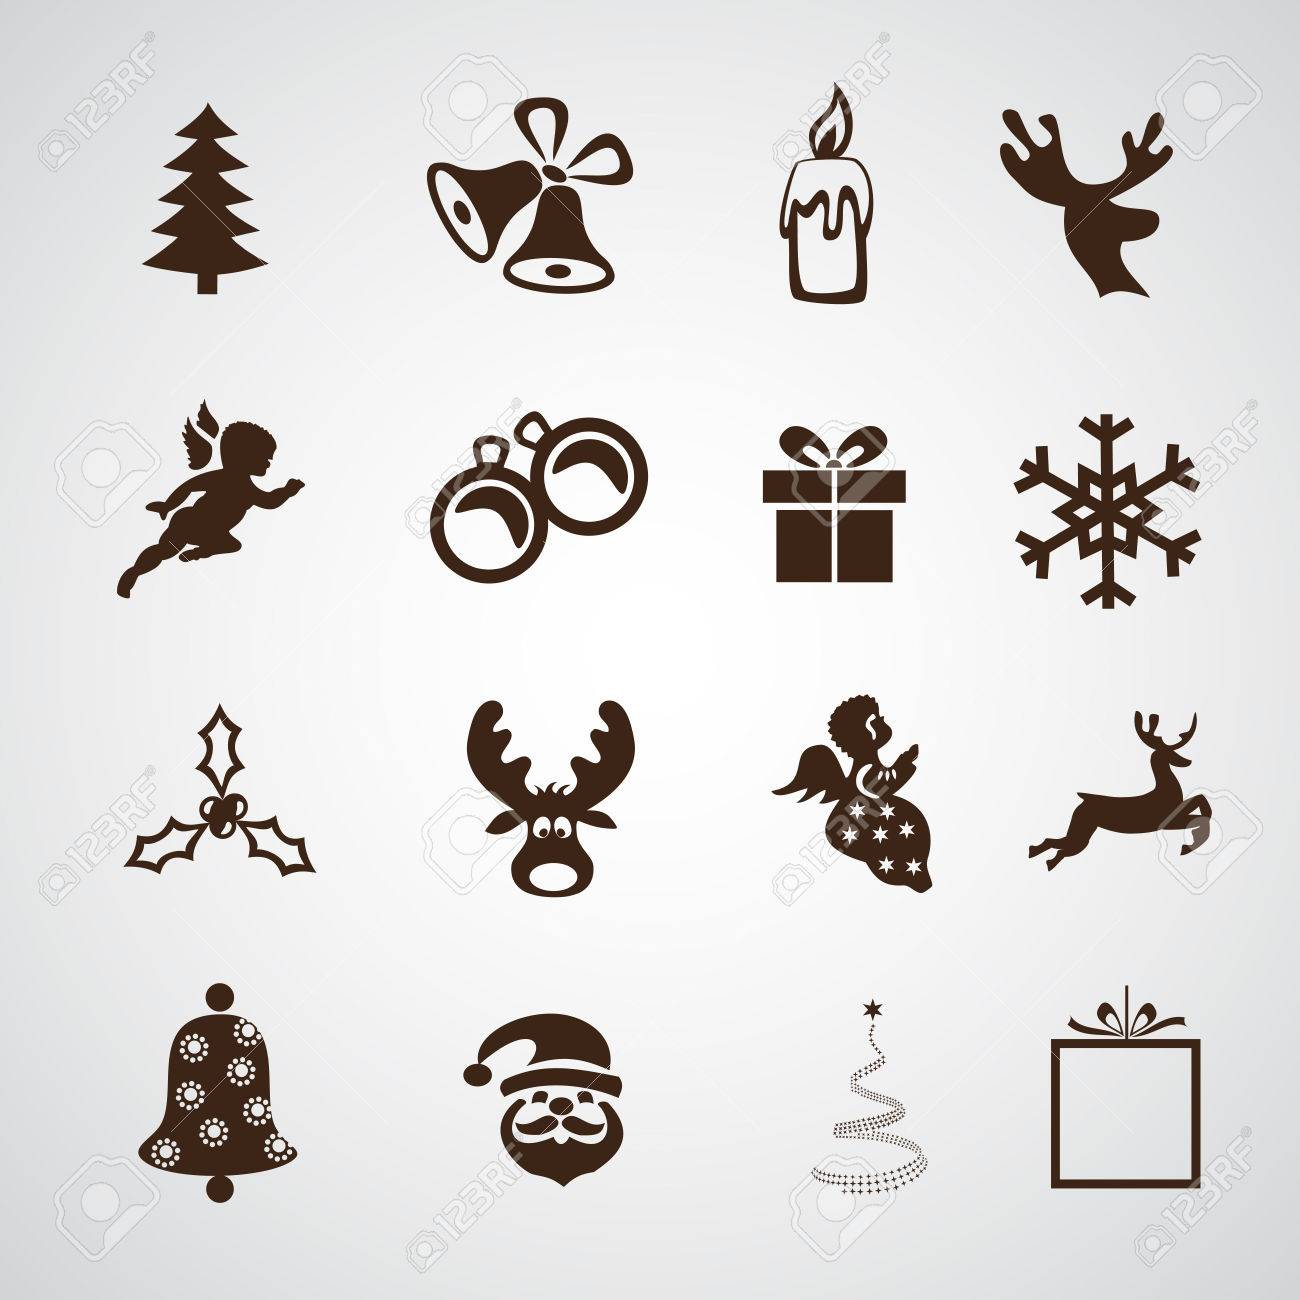 Christmas Icon.Simple Merry Christmas Icon Vector Illustration Design